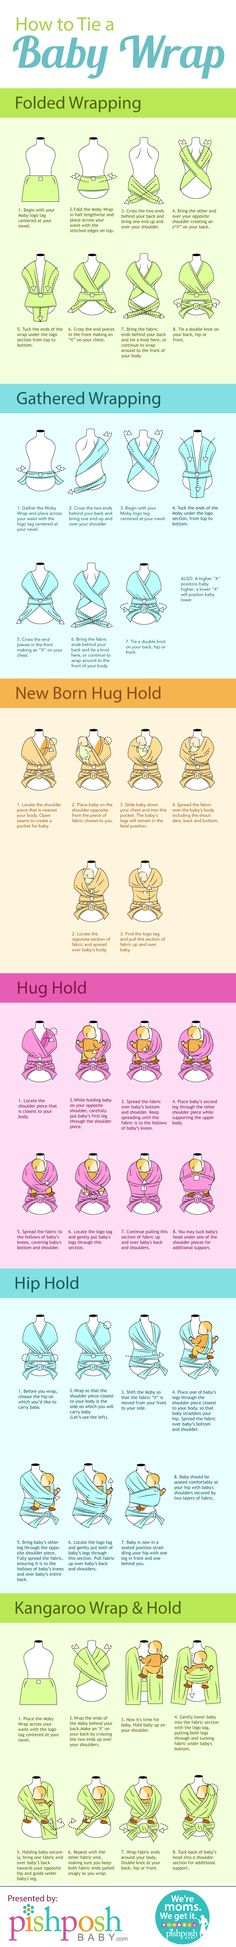 How to tie a Baby Wrap infographic